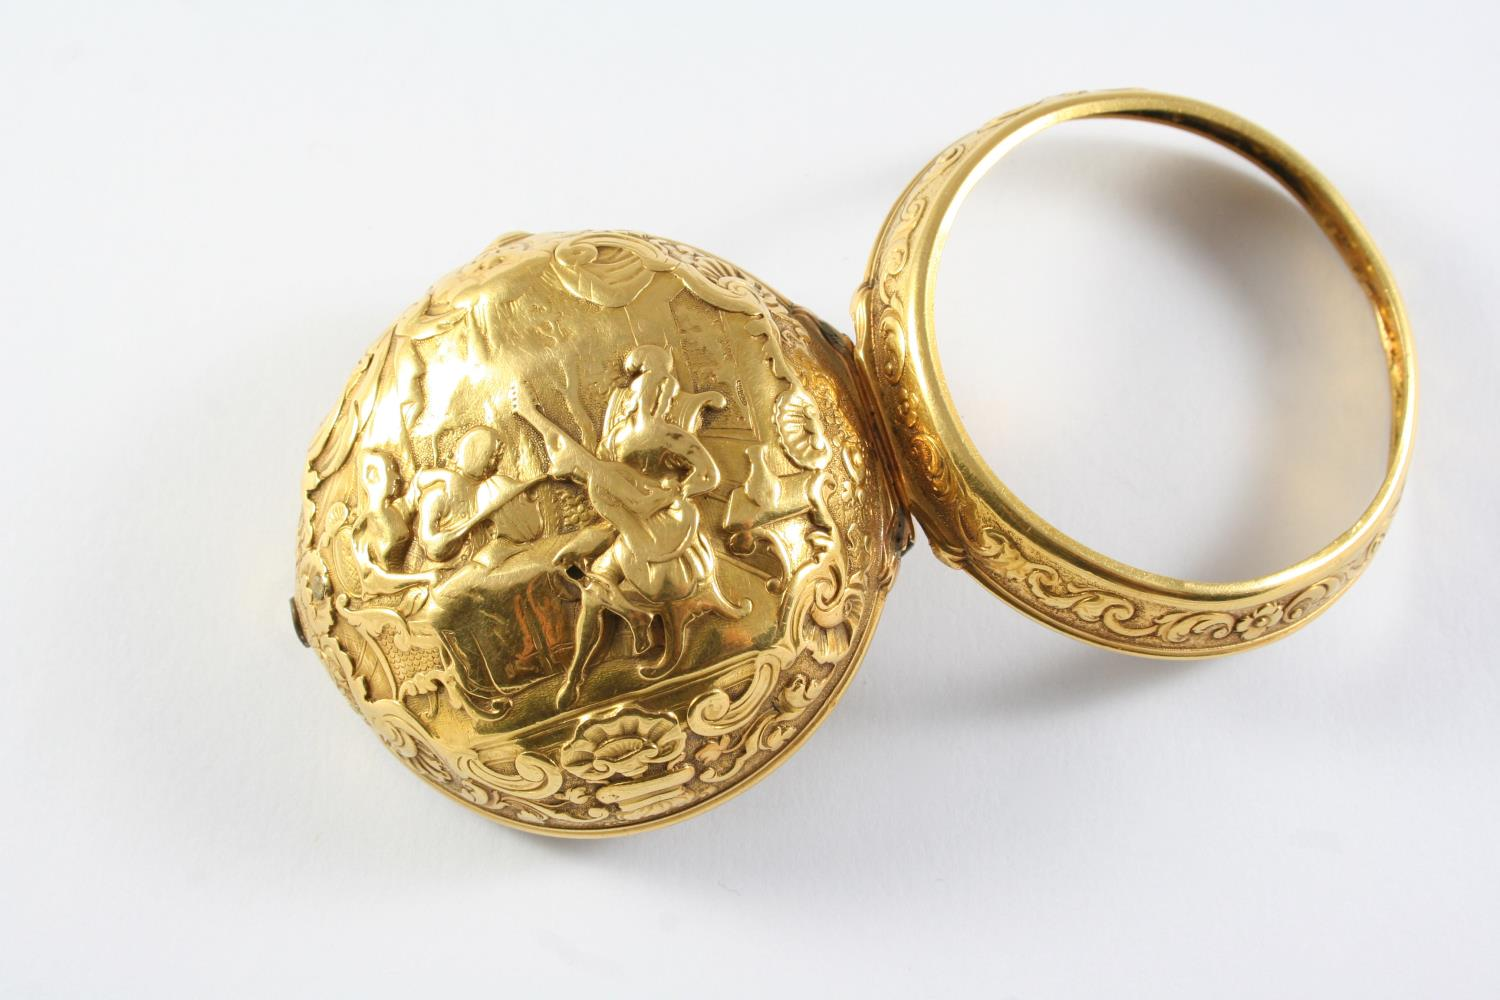 AN 18TH CENTURY GOLD PAIR CASED POCKET WATCH BY ANDREW DICKIE the signed gold dial with Roman - Image 2 of 6